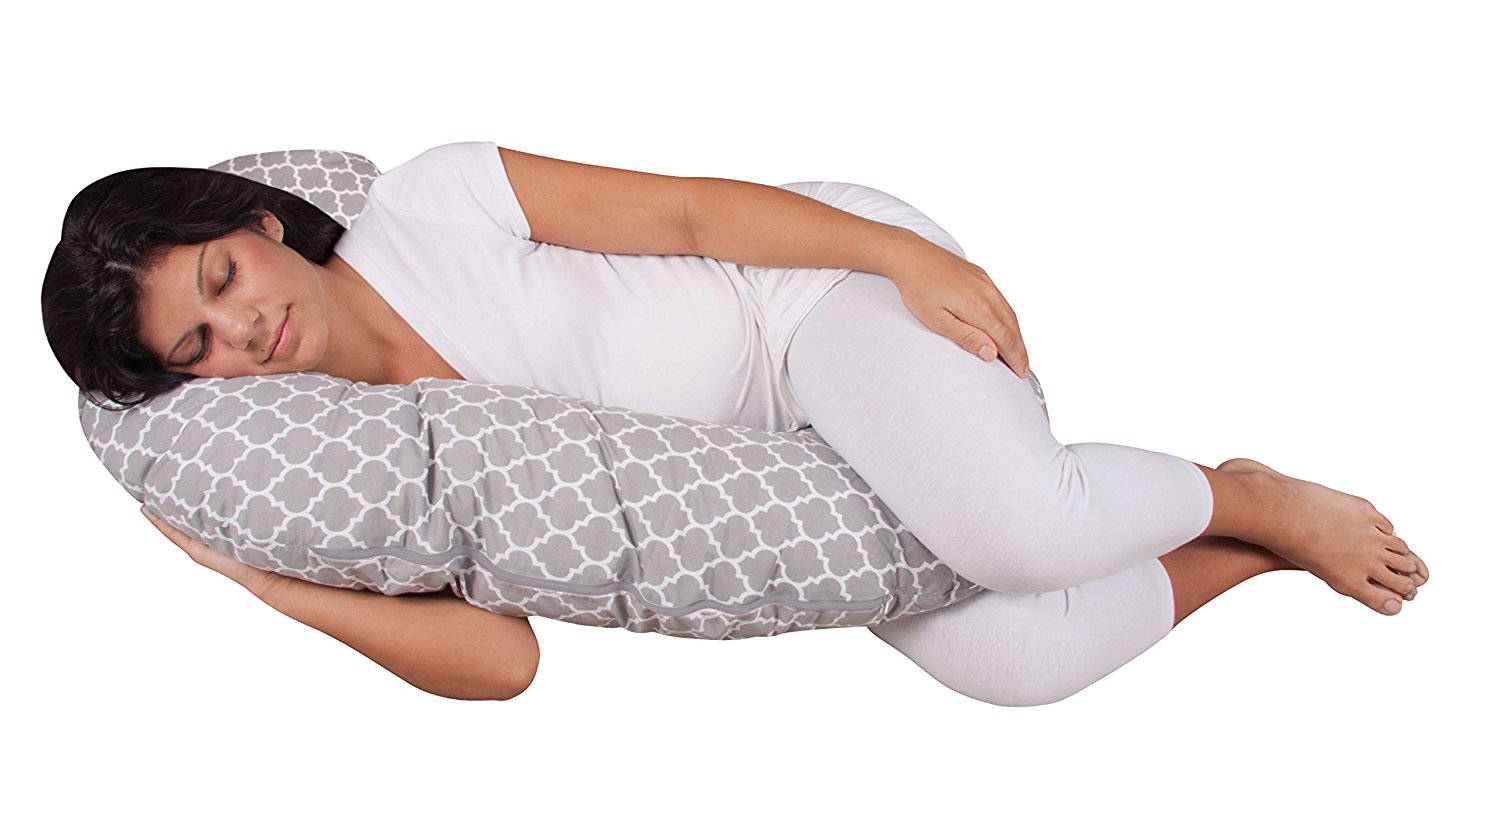 10 Best Body Pillow For Pregnancy In 2018 Reviews